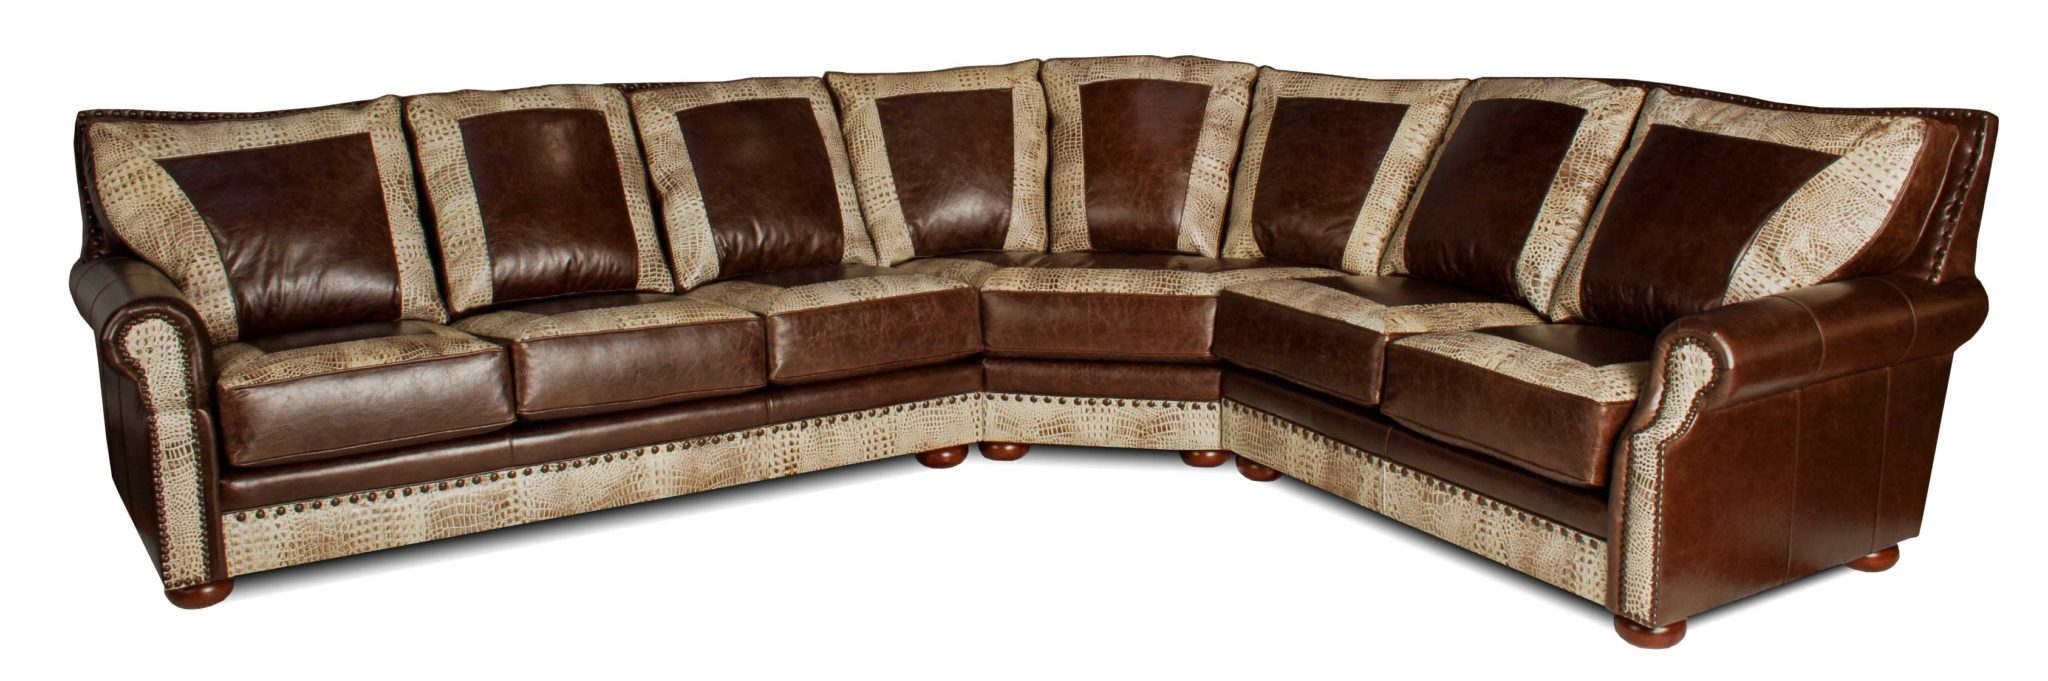 Leather creations leather furniture recliners for Leather sectional sofa